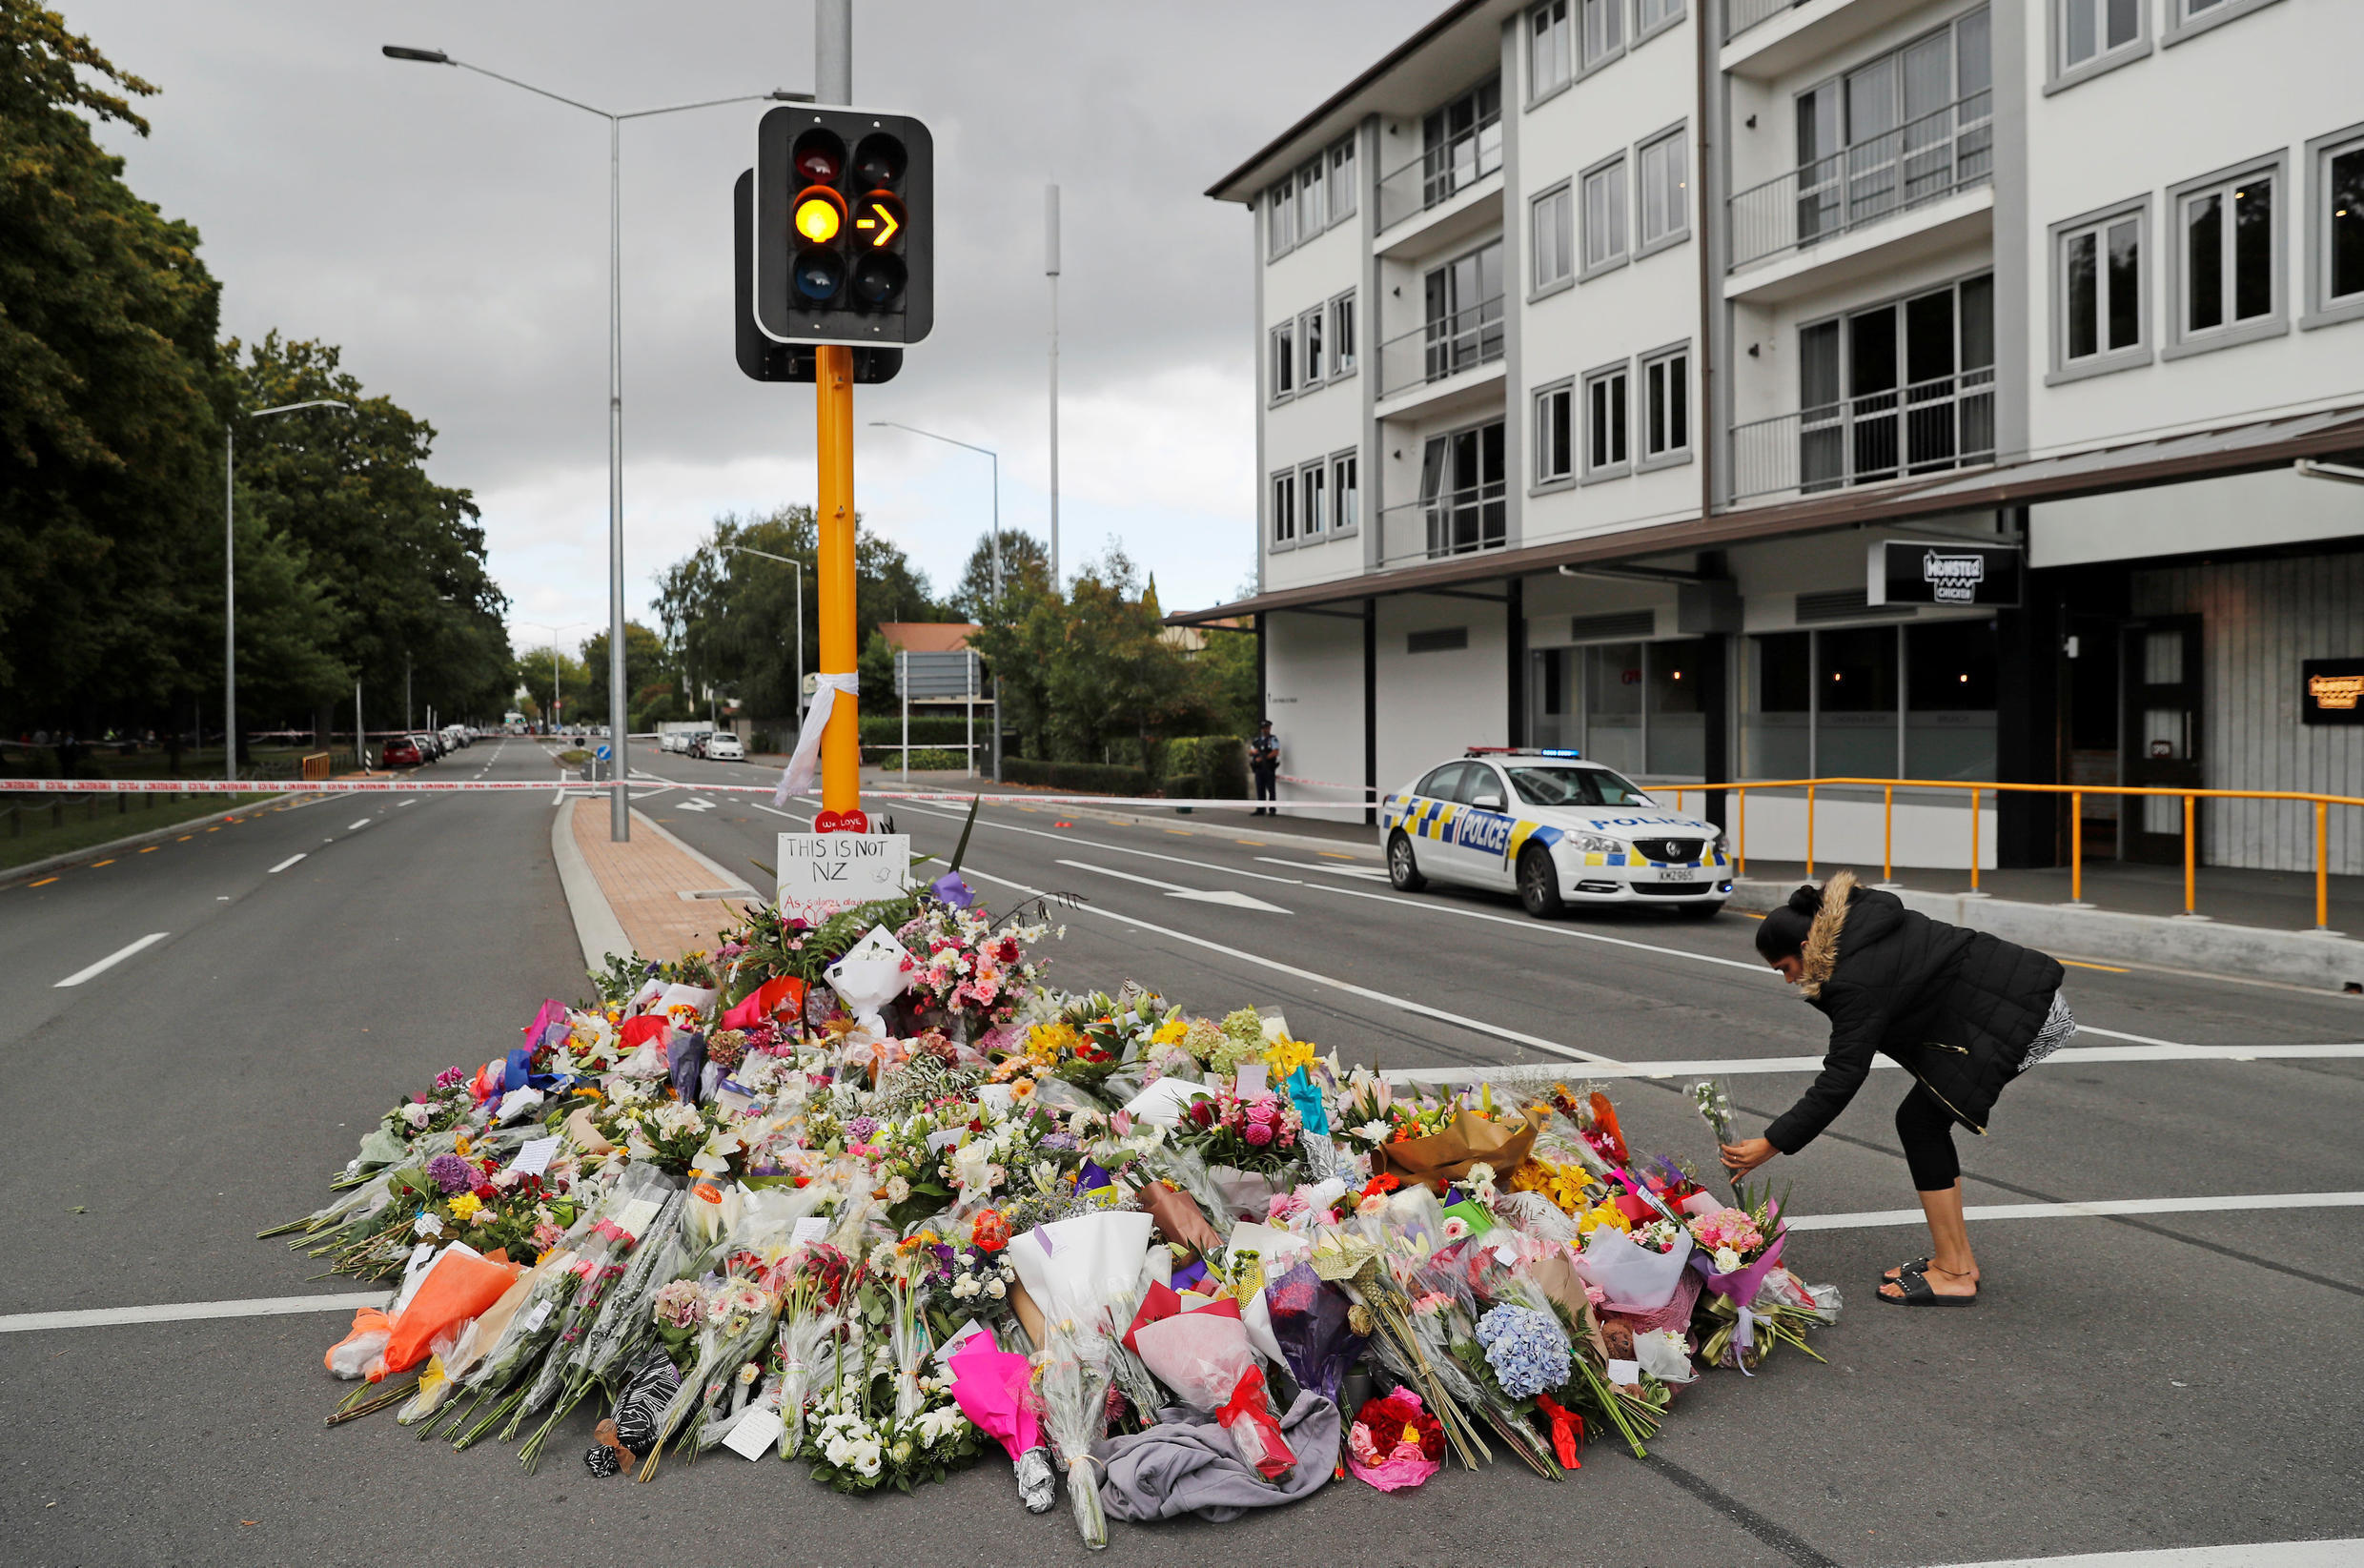 A woman places flowers at a memorial as a tribute to victims of the mosque attacks, near a police line outside Masjid Al Noor in Christchurch, New Zealand, March 16, 2019.